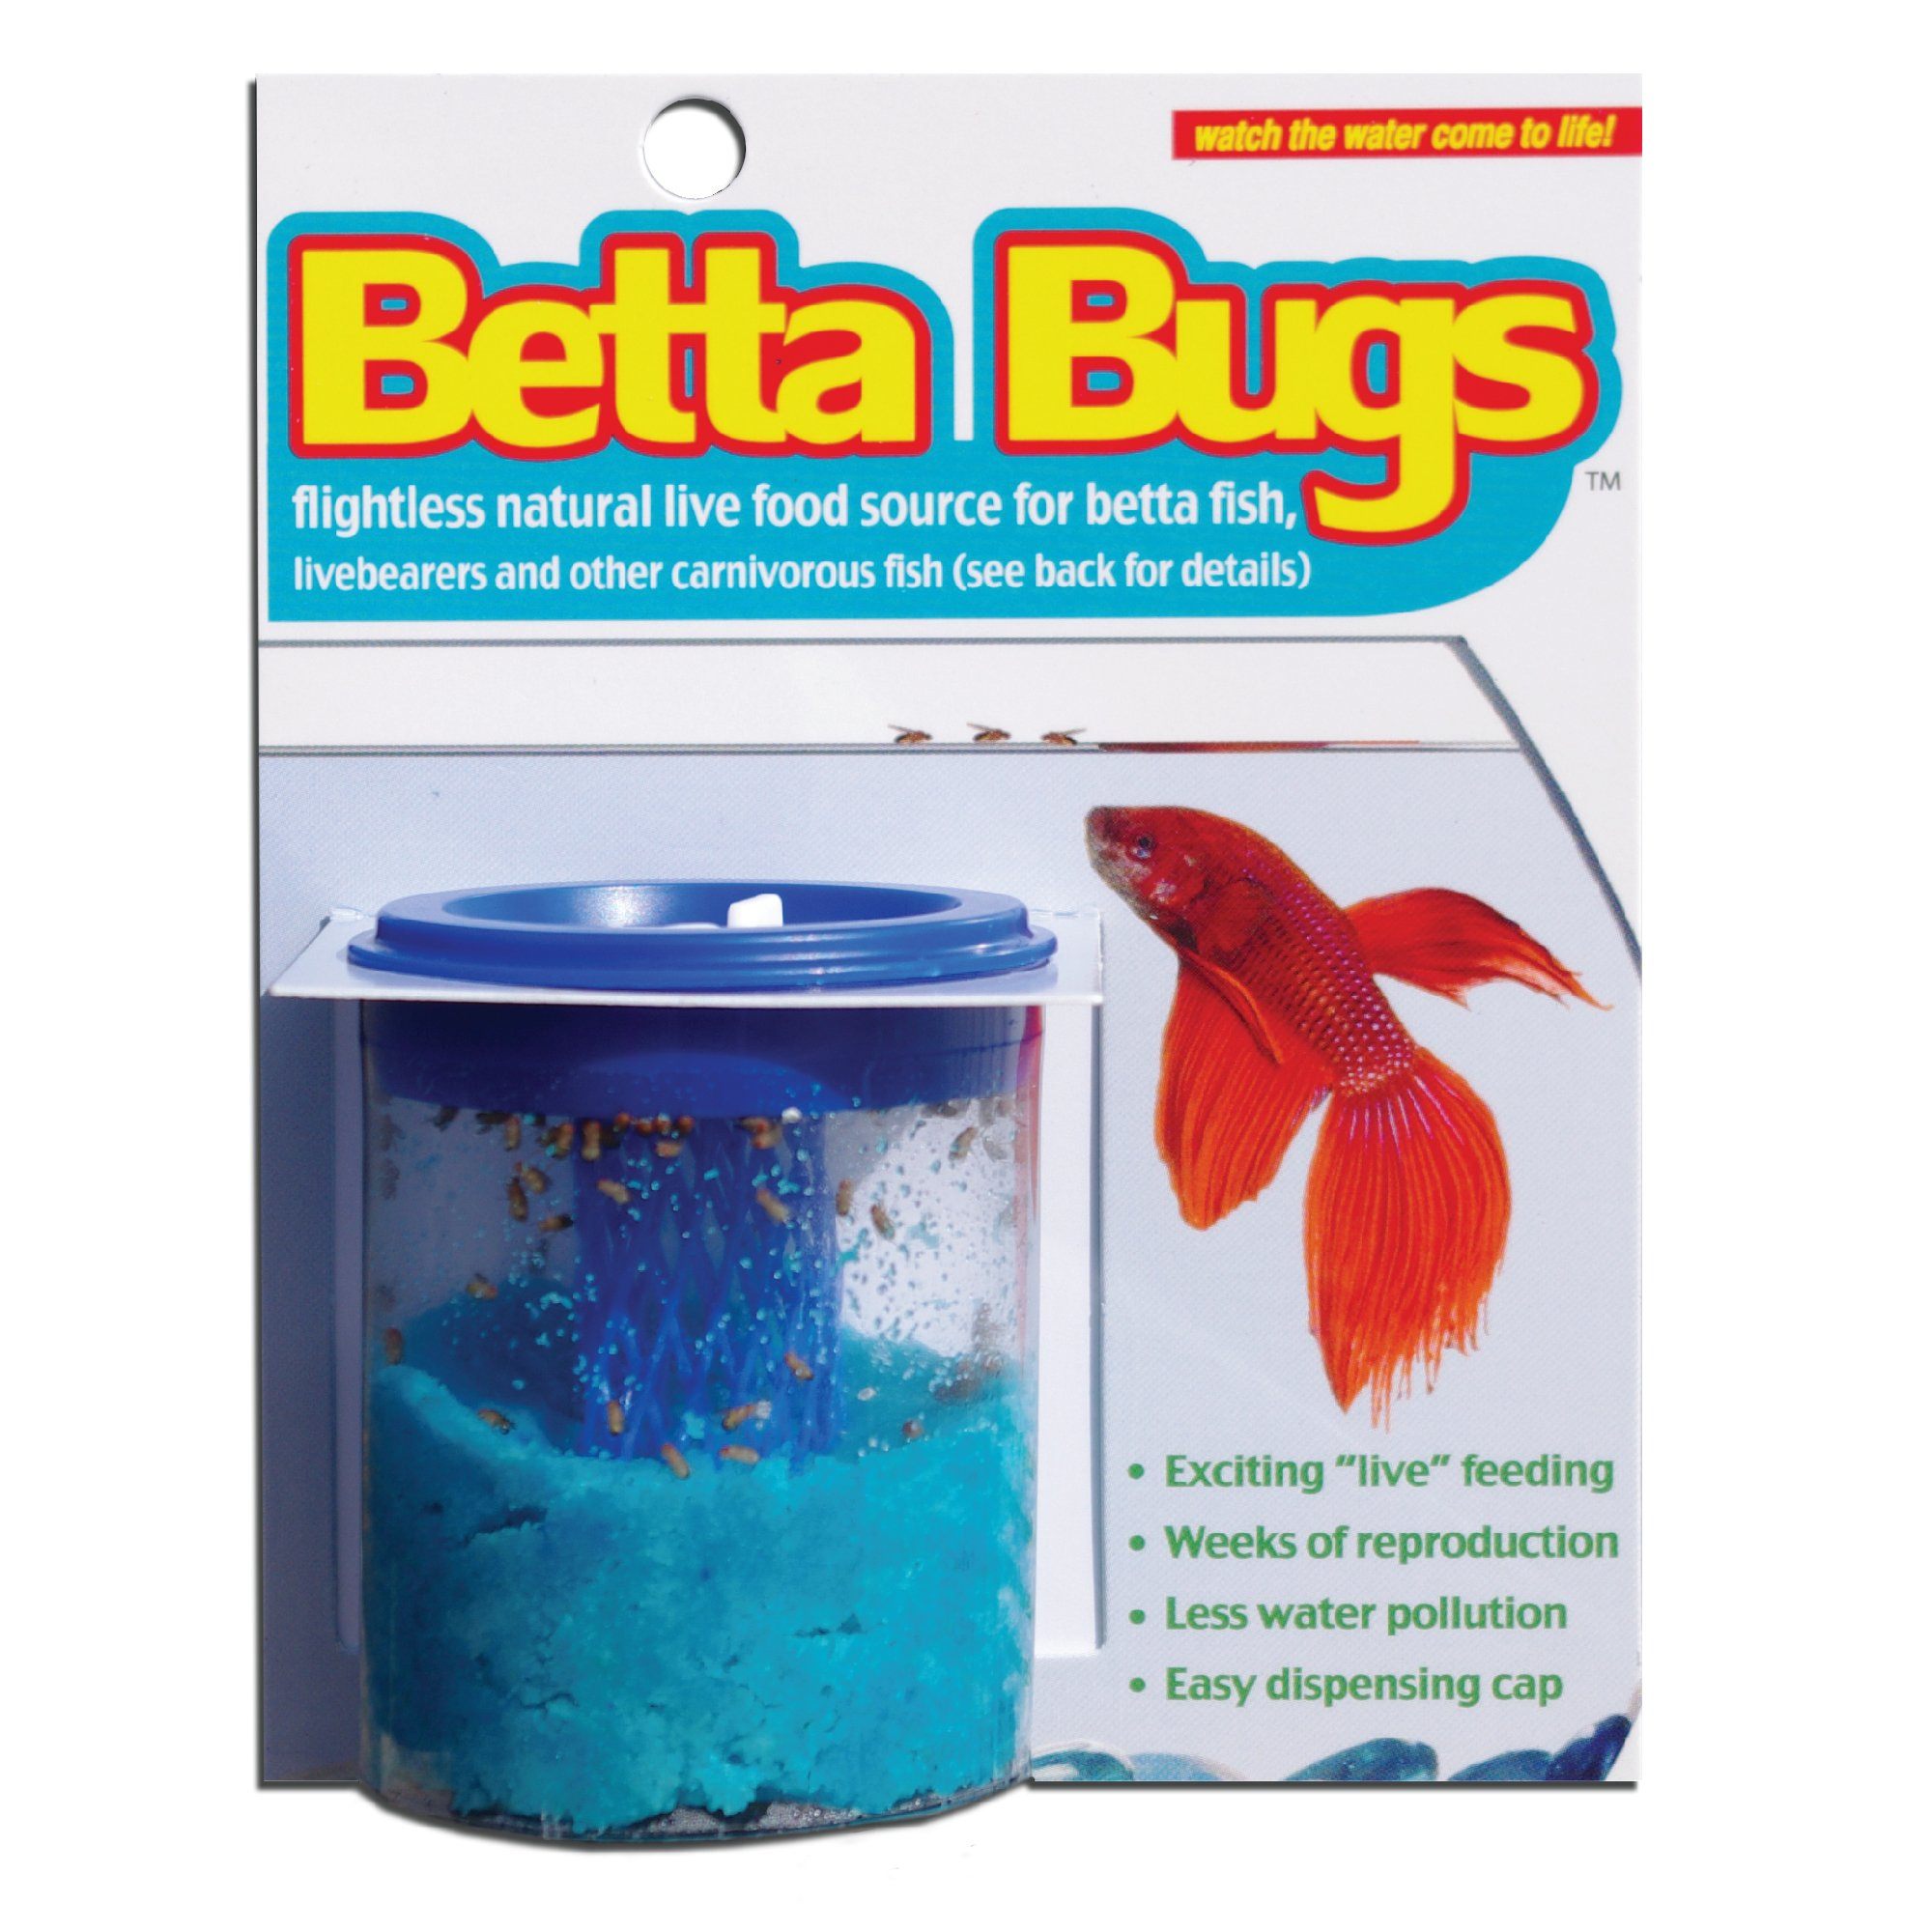 Timberline betta bugs petco for Food for betta fish